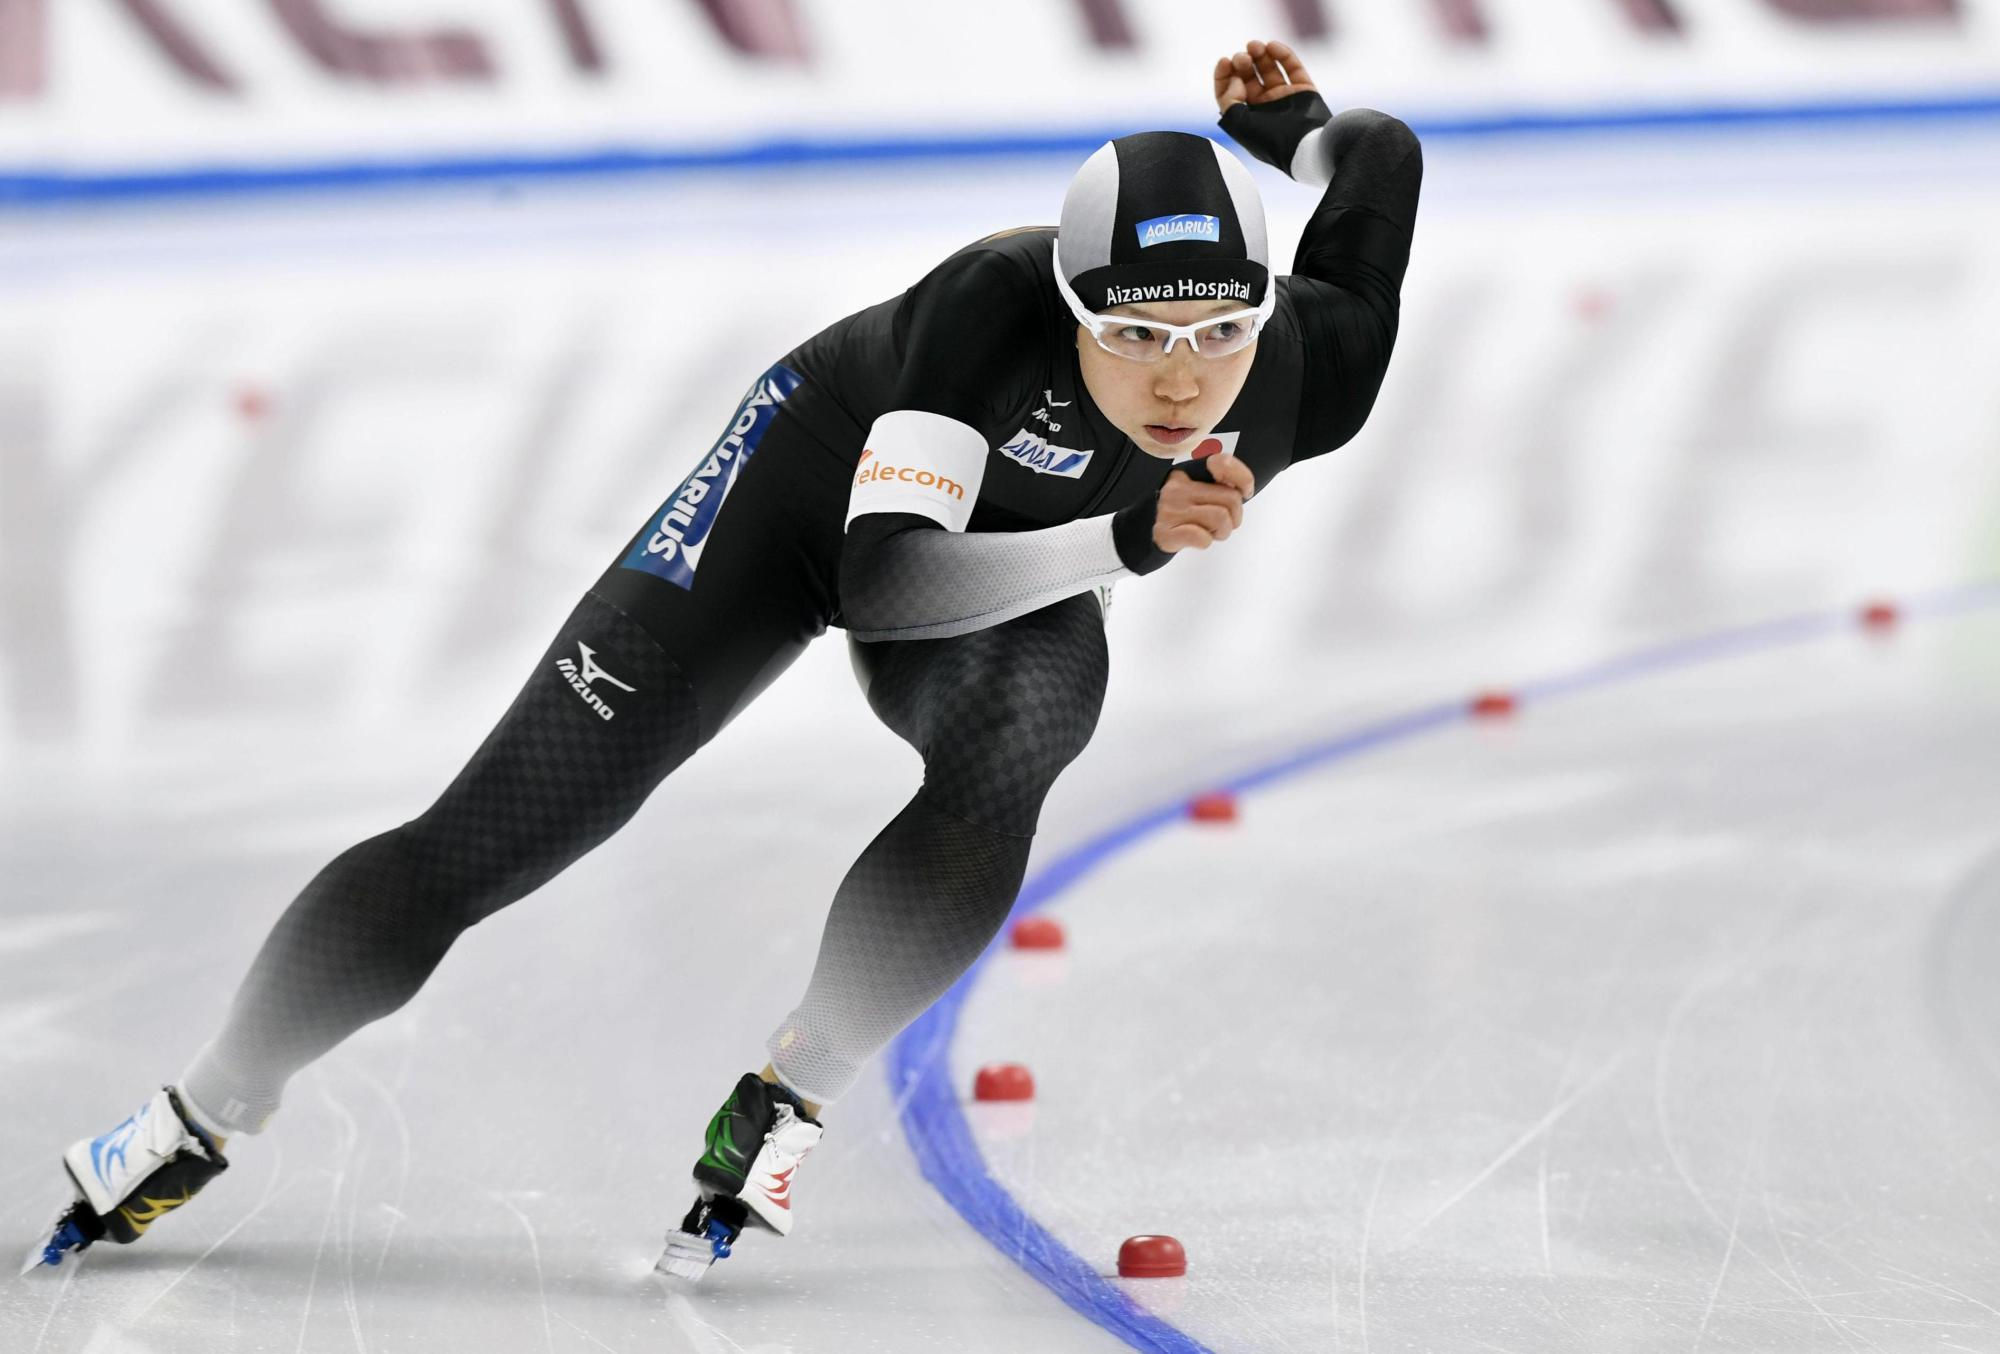 Nao Kodaira competes en route to a victory in the women's 500-meter race at the ISU's World Single Distances Speed Skating Championships on Friday in Gangneung, South Korea.   KYODO